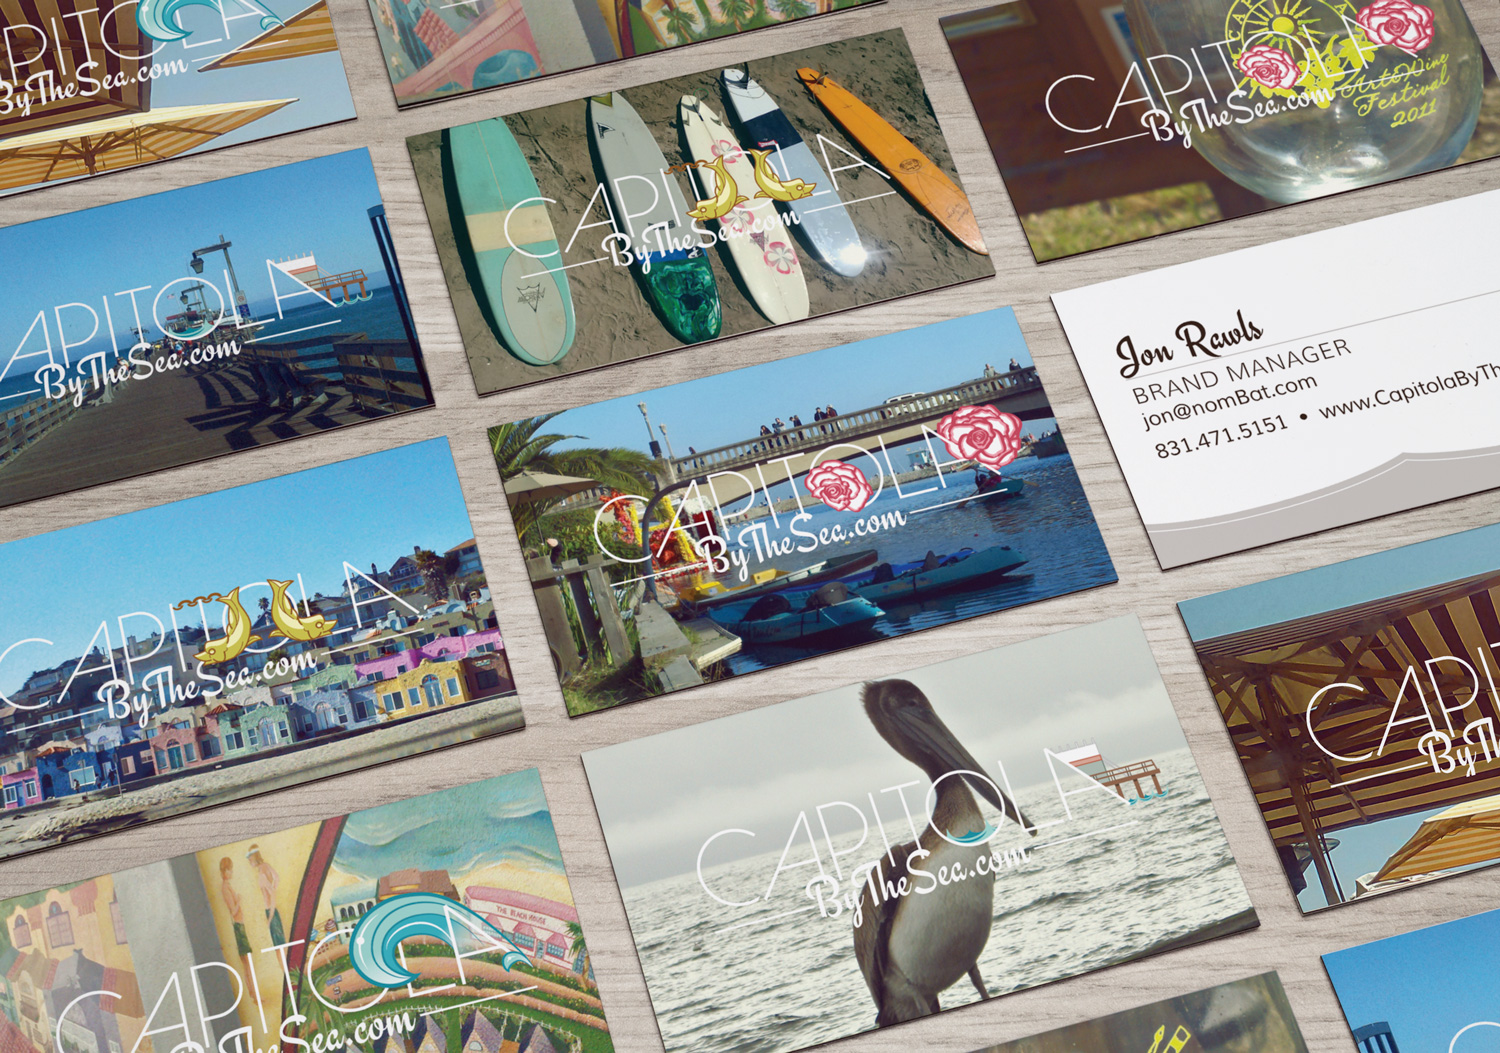 Capitola by the Sea - business cards